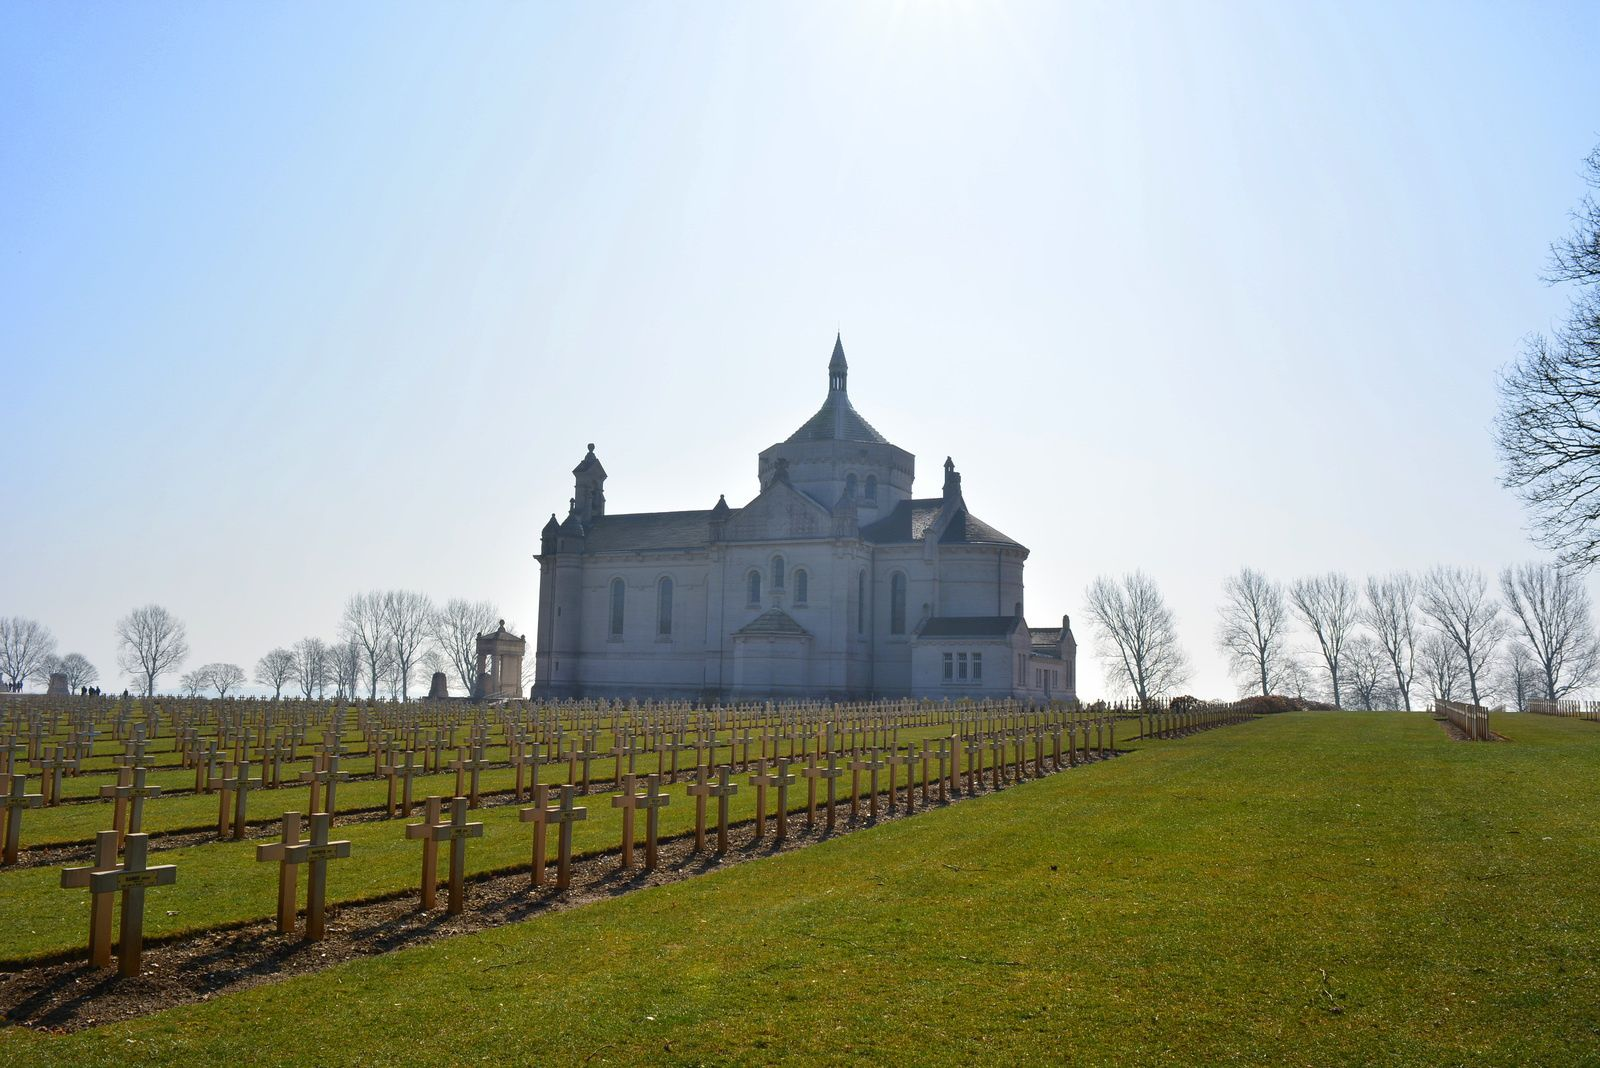 Nécropole nationale de Notre-Dame-de-Lorette à Ablain-Saint-Nazaire - Photo MG : 17 MARS 2015.